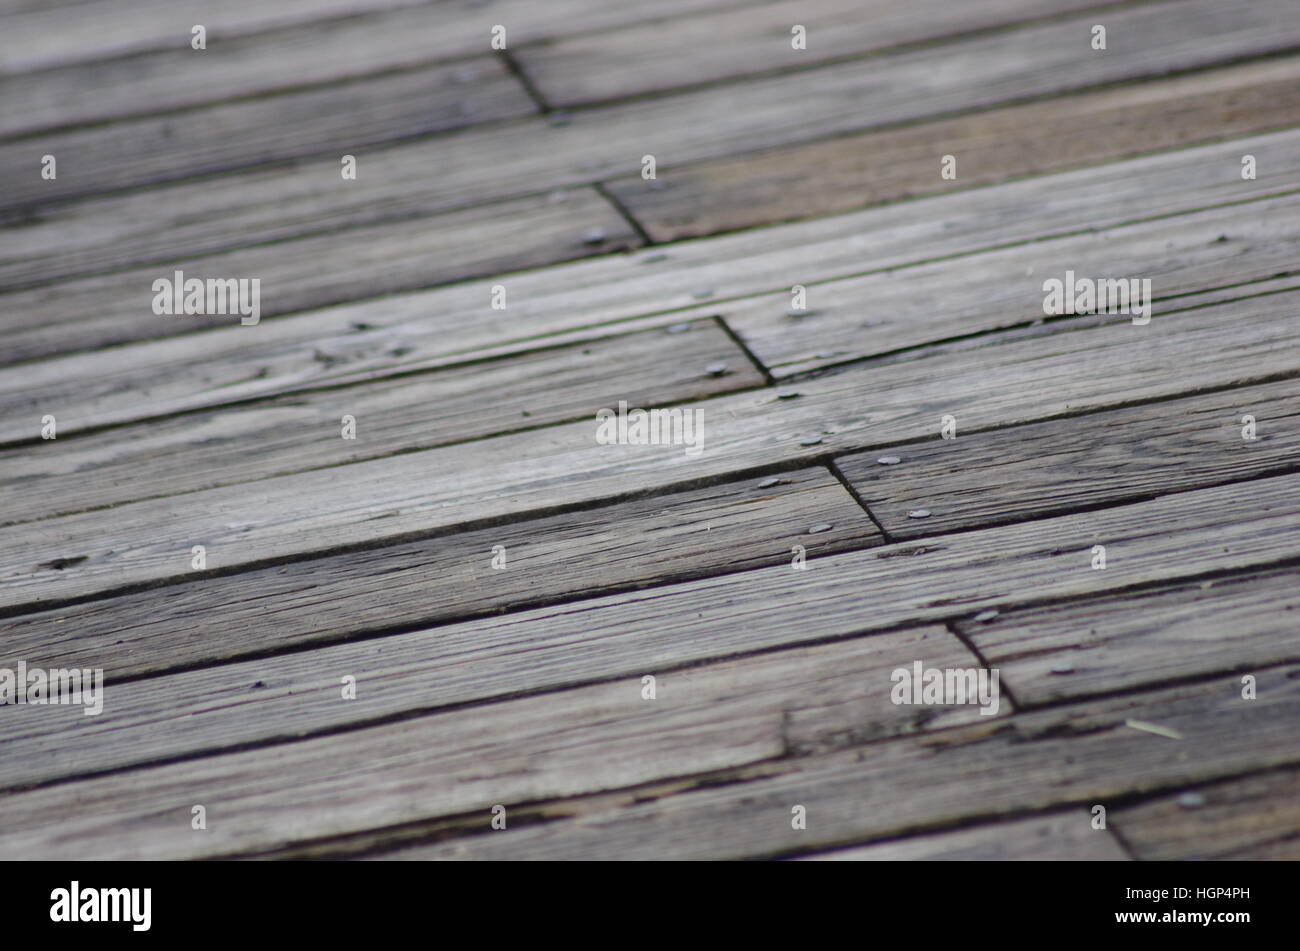 Brown and gray wooden boards with nails. Porch floor wood pattern chipped splintering holes cracks crooked diagonal Stock Photo